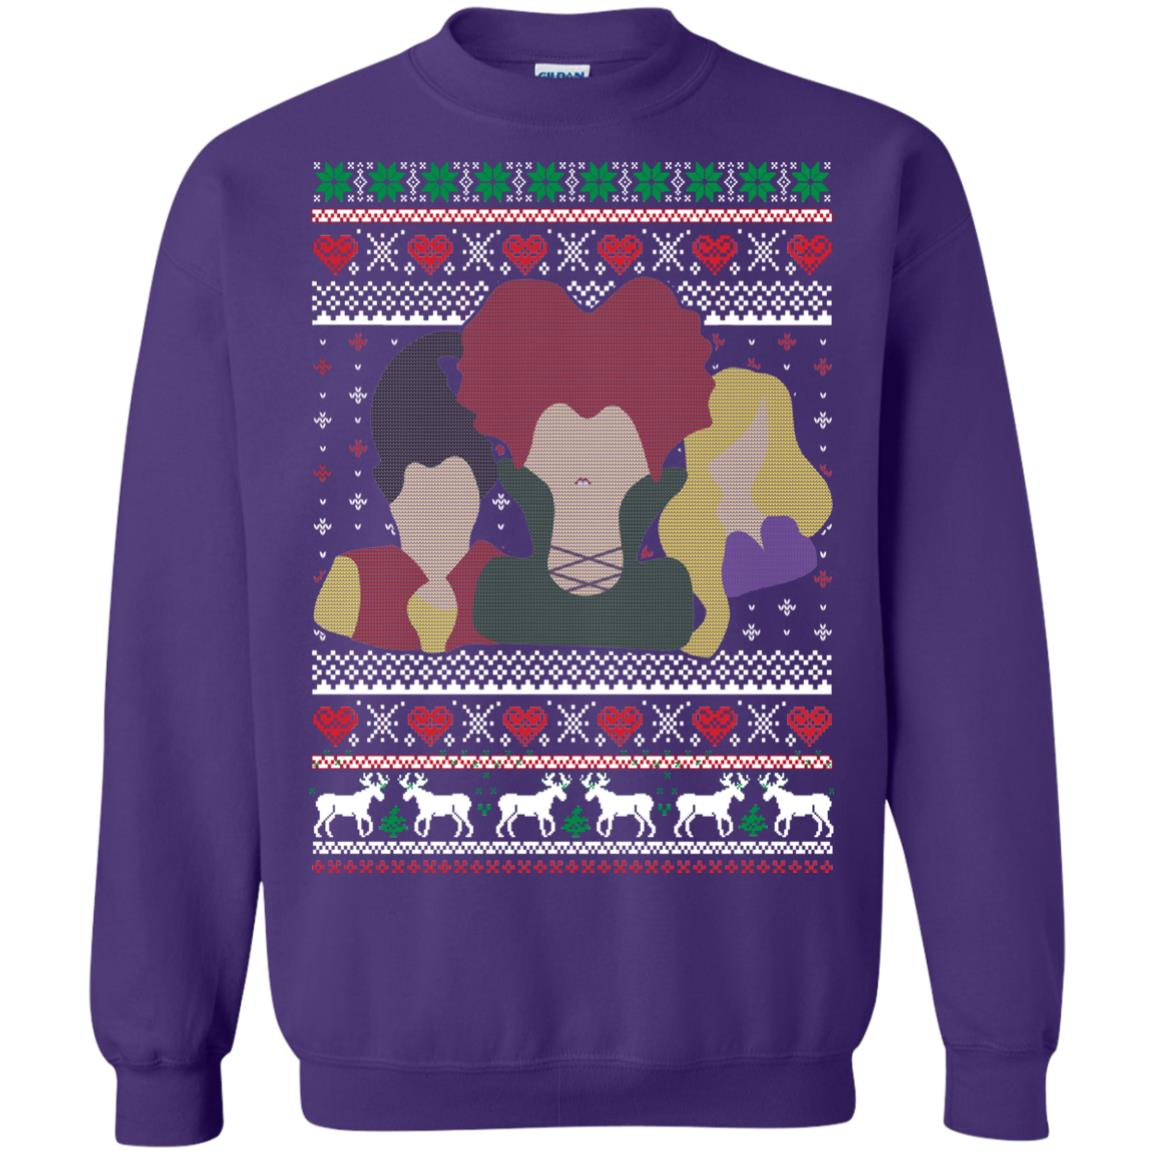 image 648px Hocus Pocus Ugly Christmas Sweater Shirt